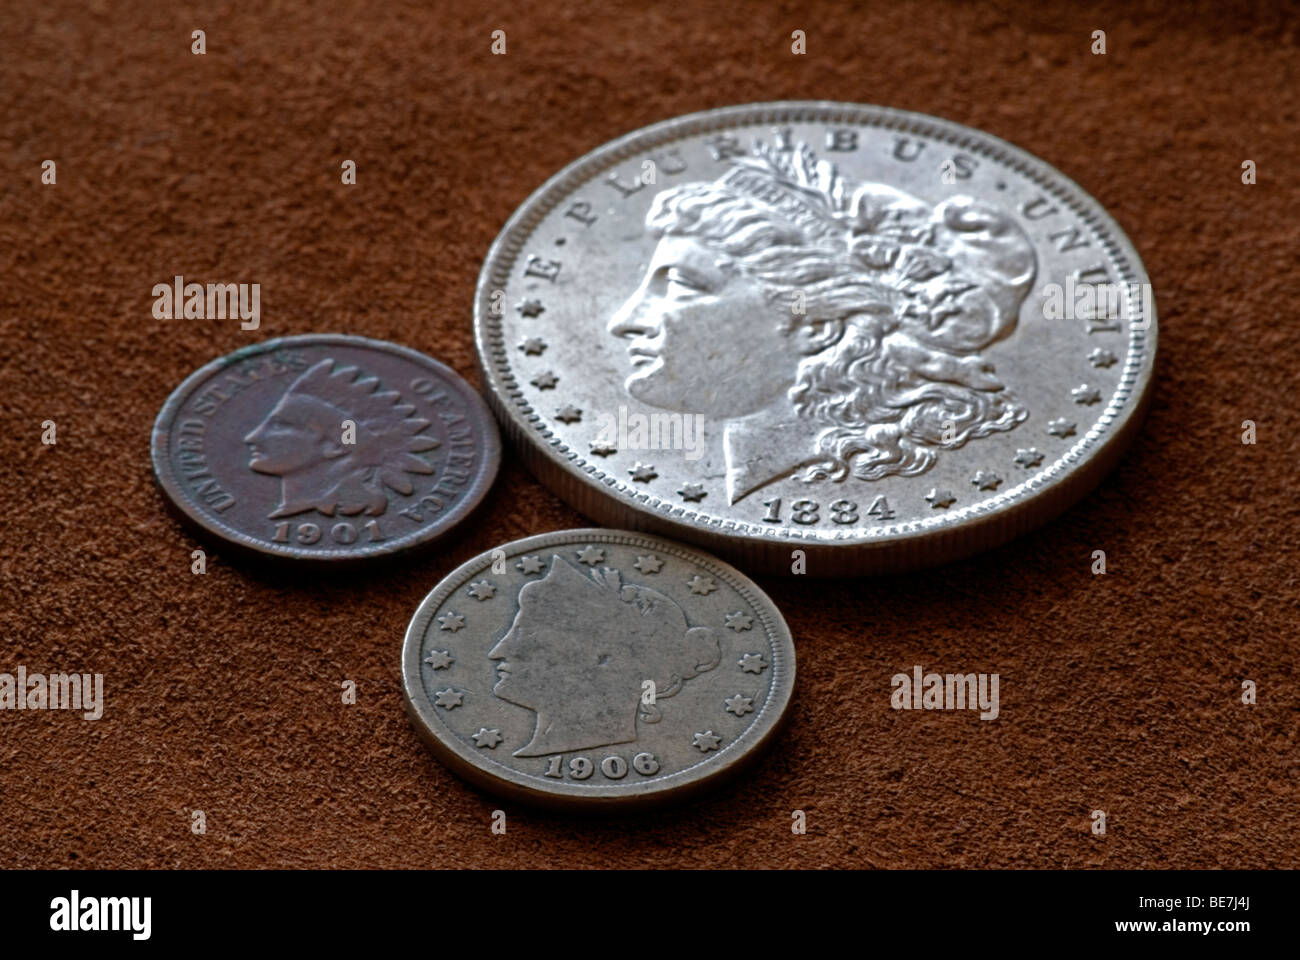 Old United States coins photographed on leather, Colorado US - Stock Image